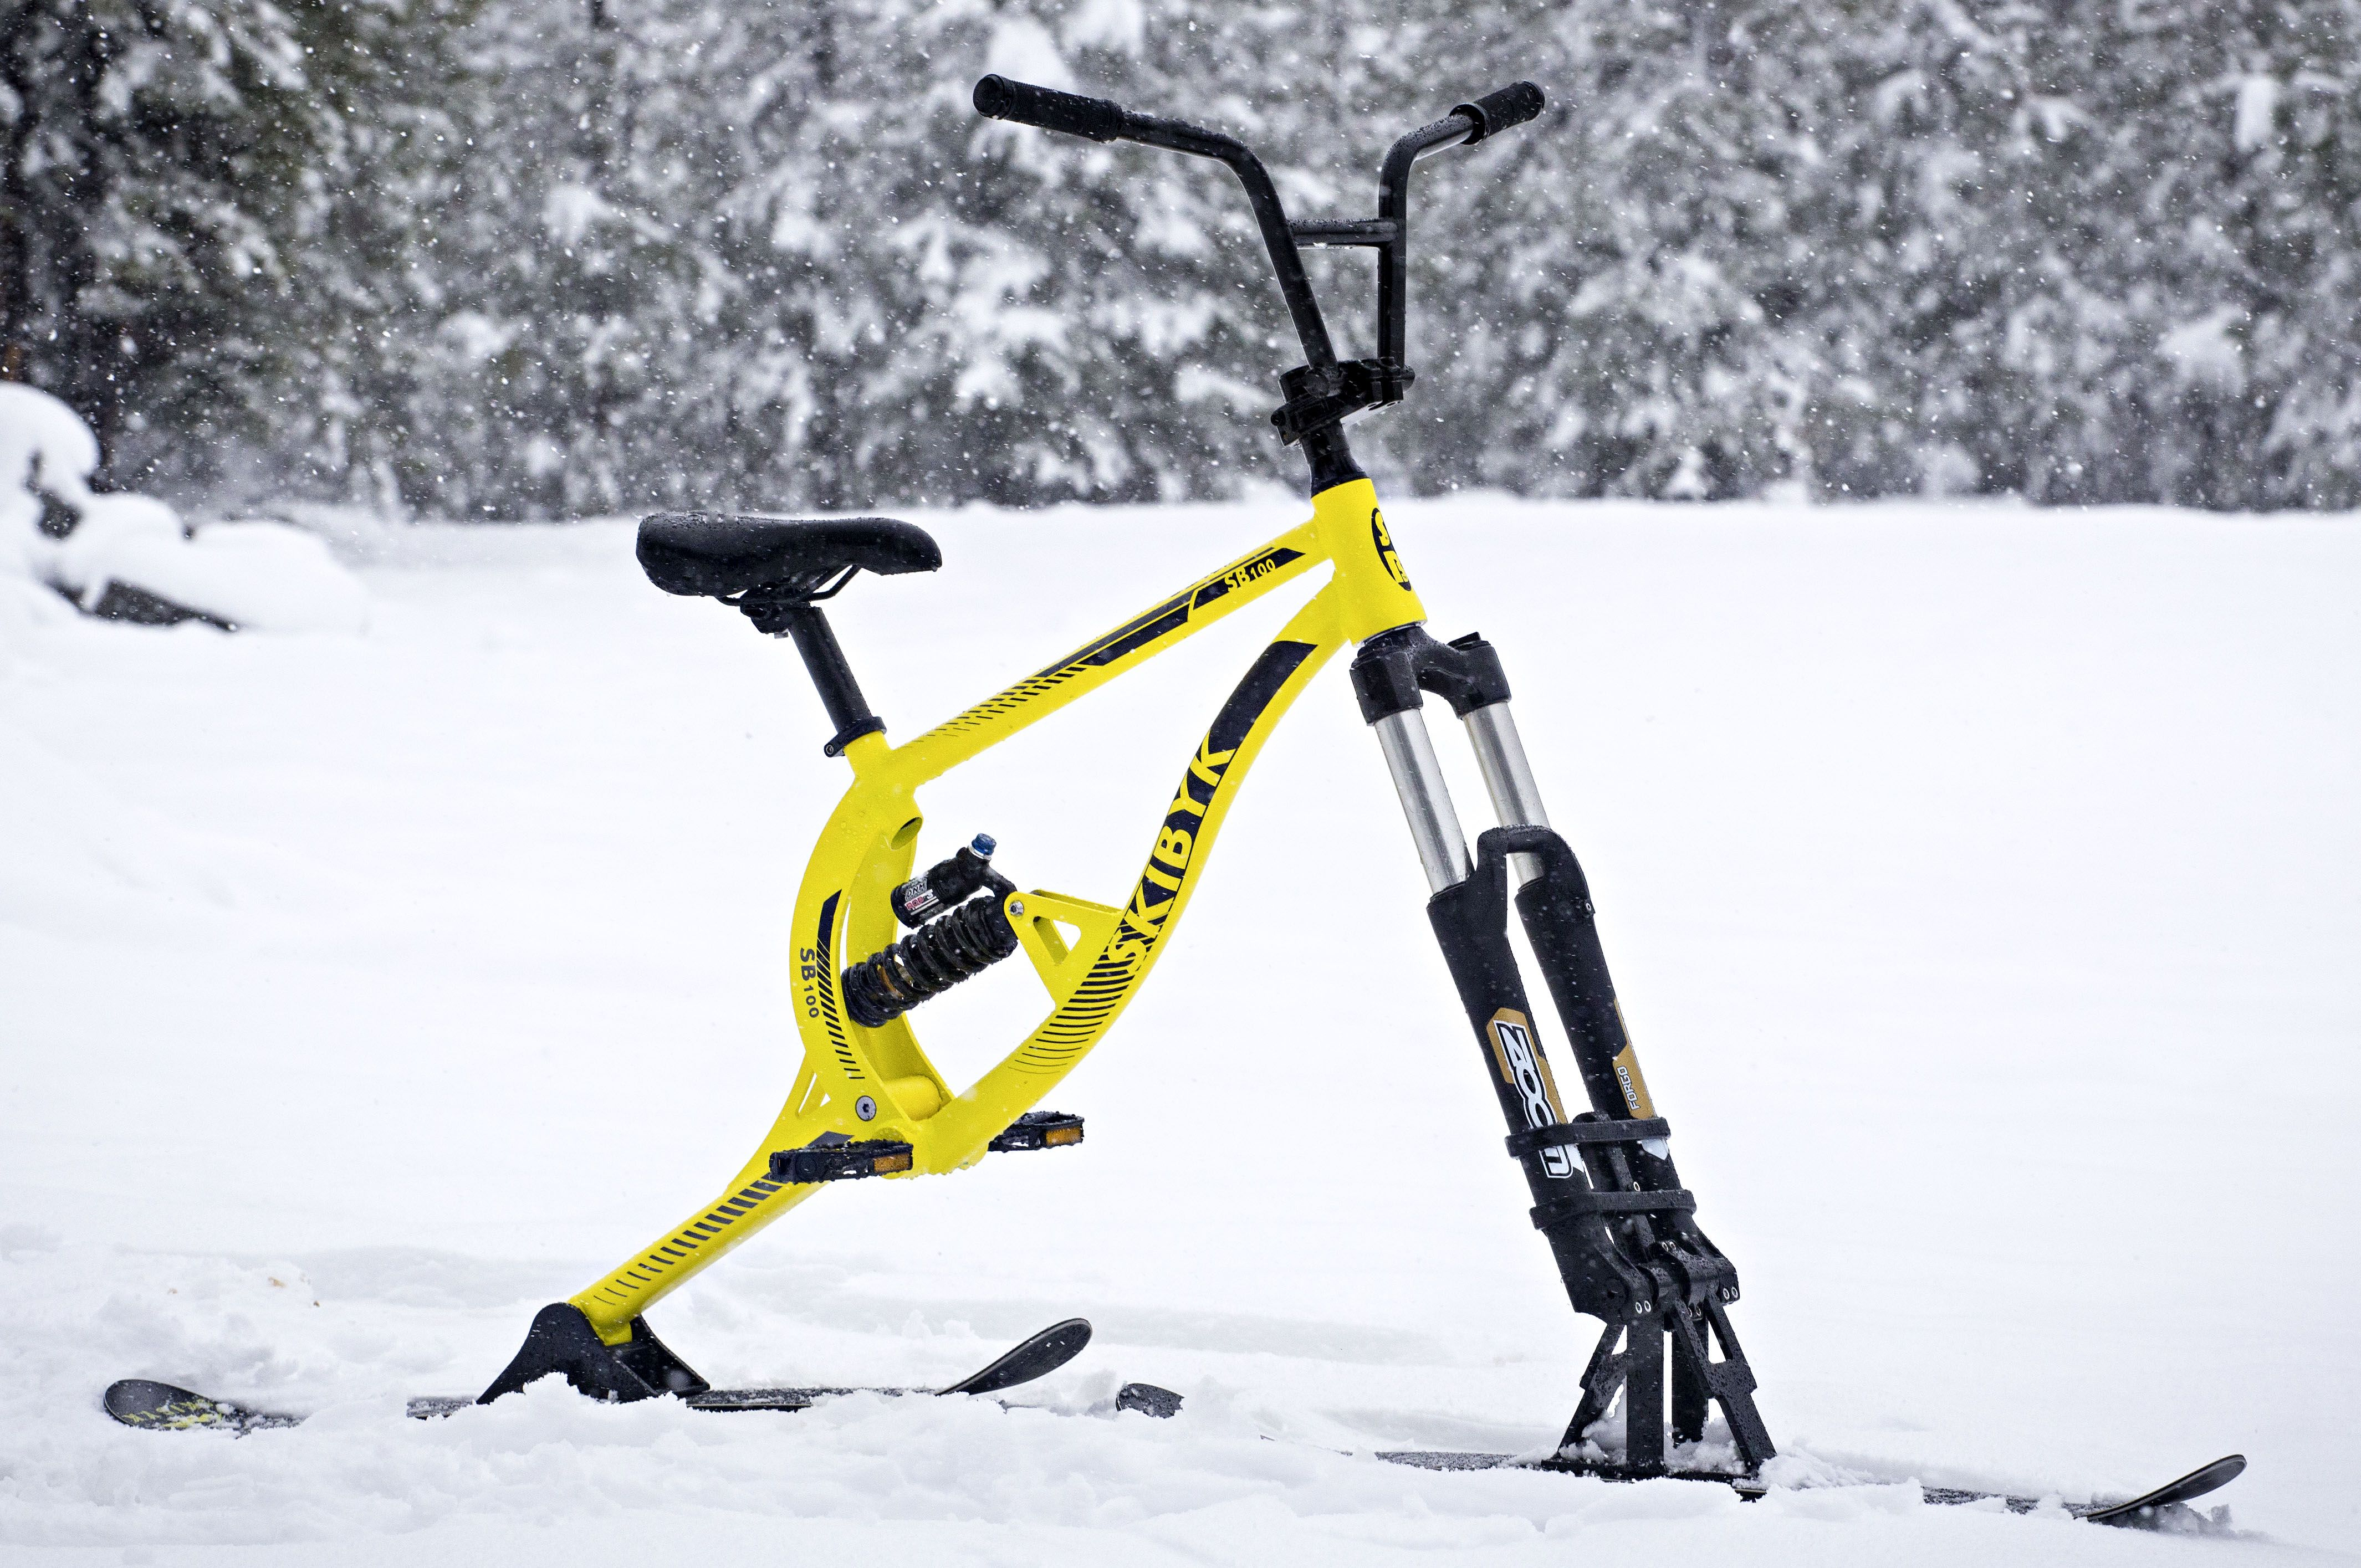 Sb100 All Mountain Ski Bike Skibikes All The Performance You D